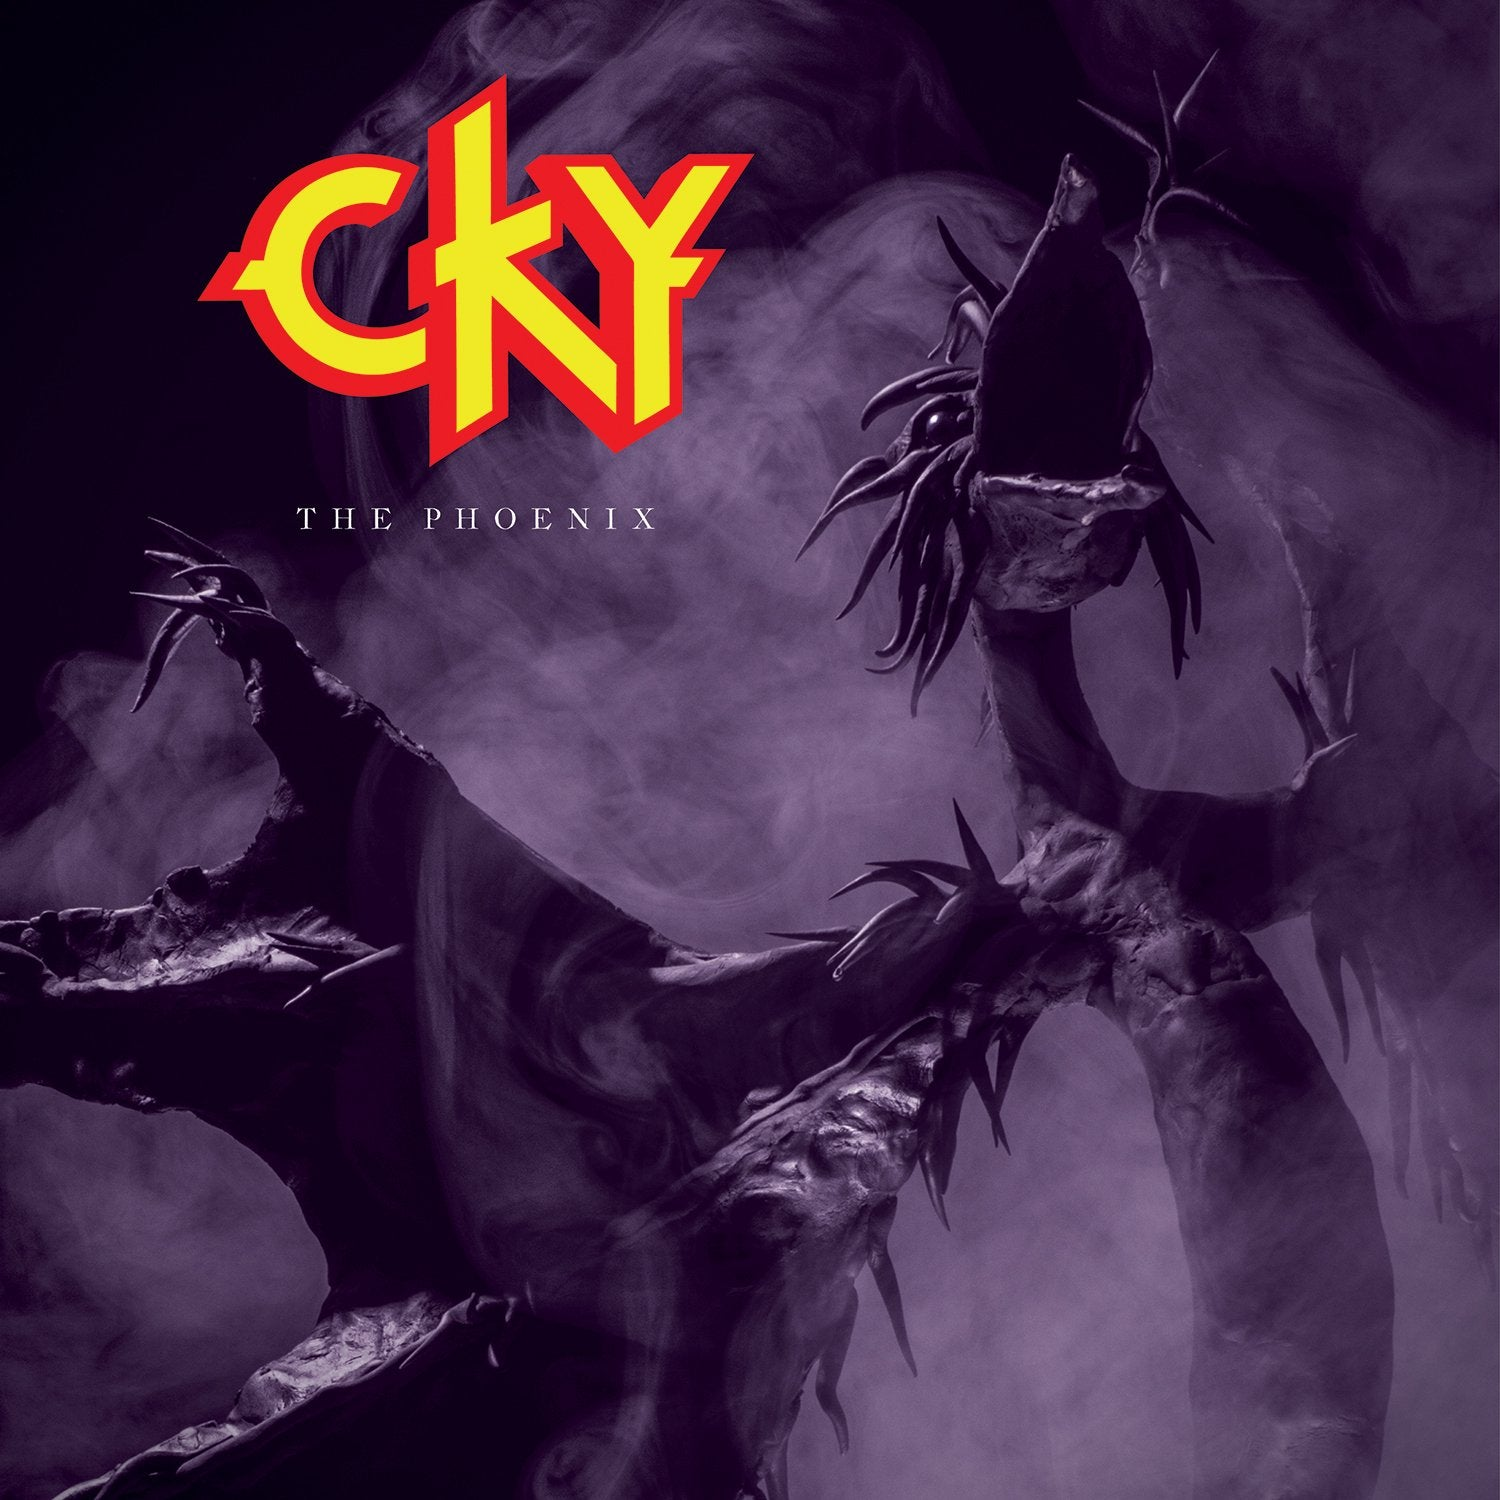 CKY/The Pheonix [LP]